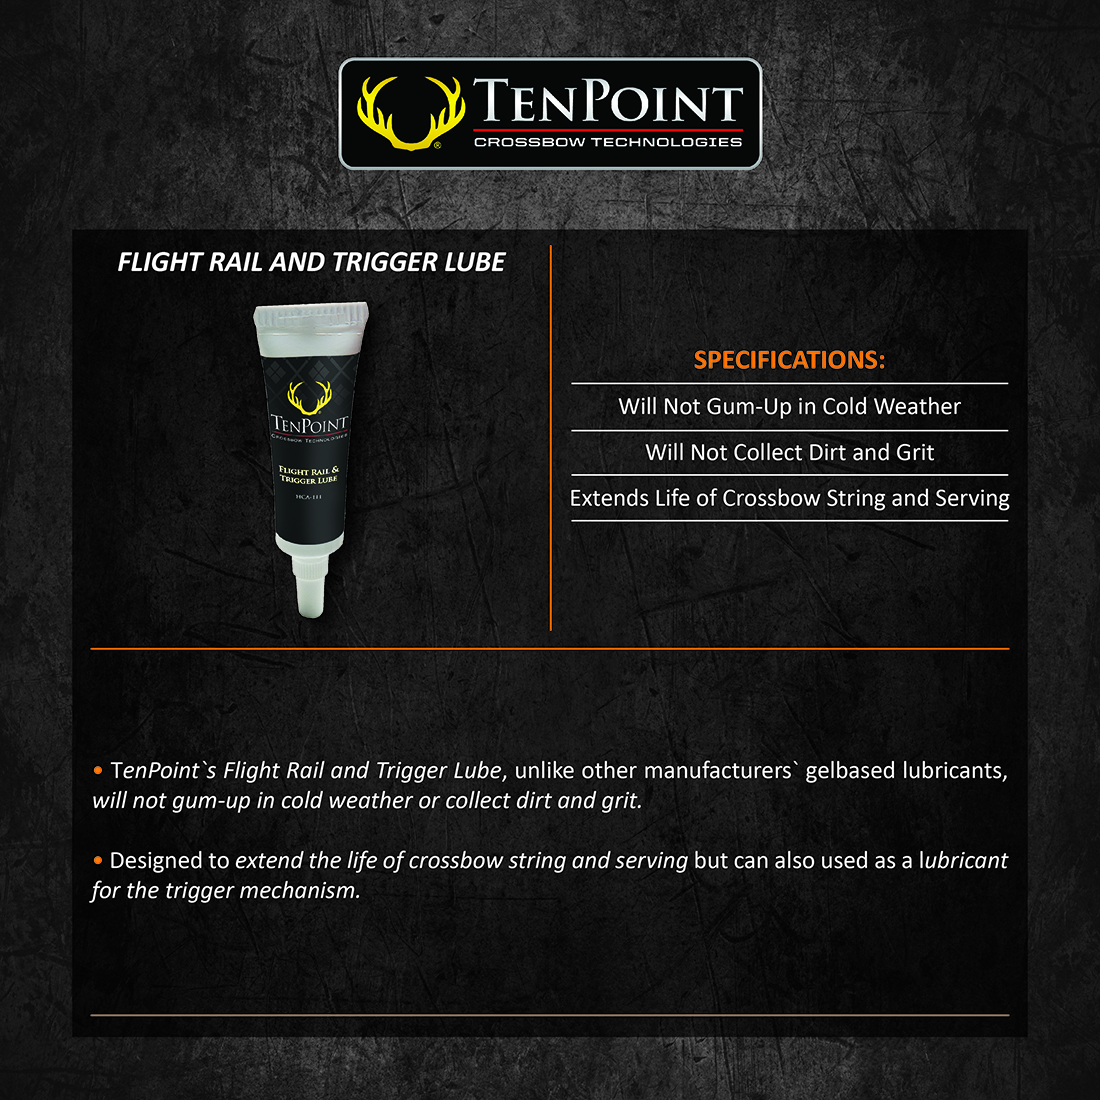 TenPoint_Flight_Rail_and_Tigger_Lube_Product_Description